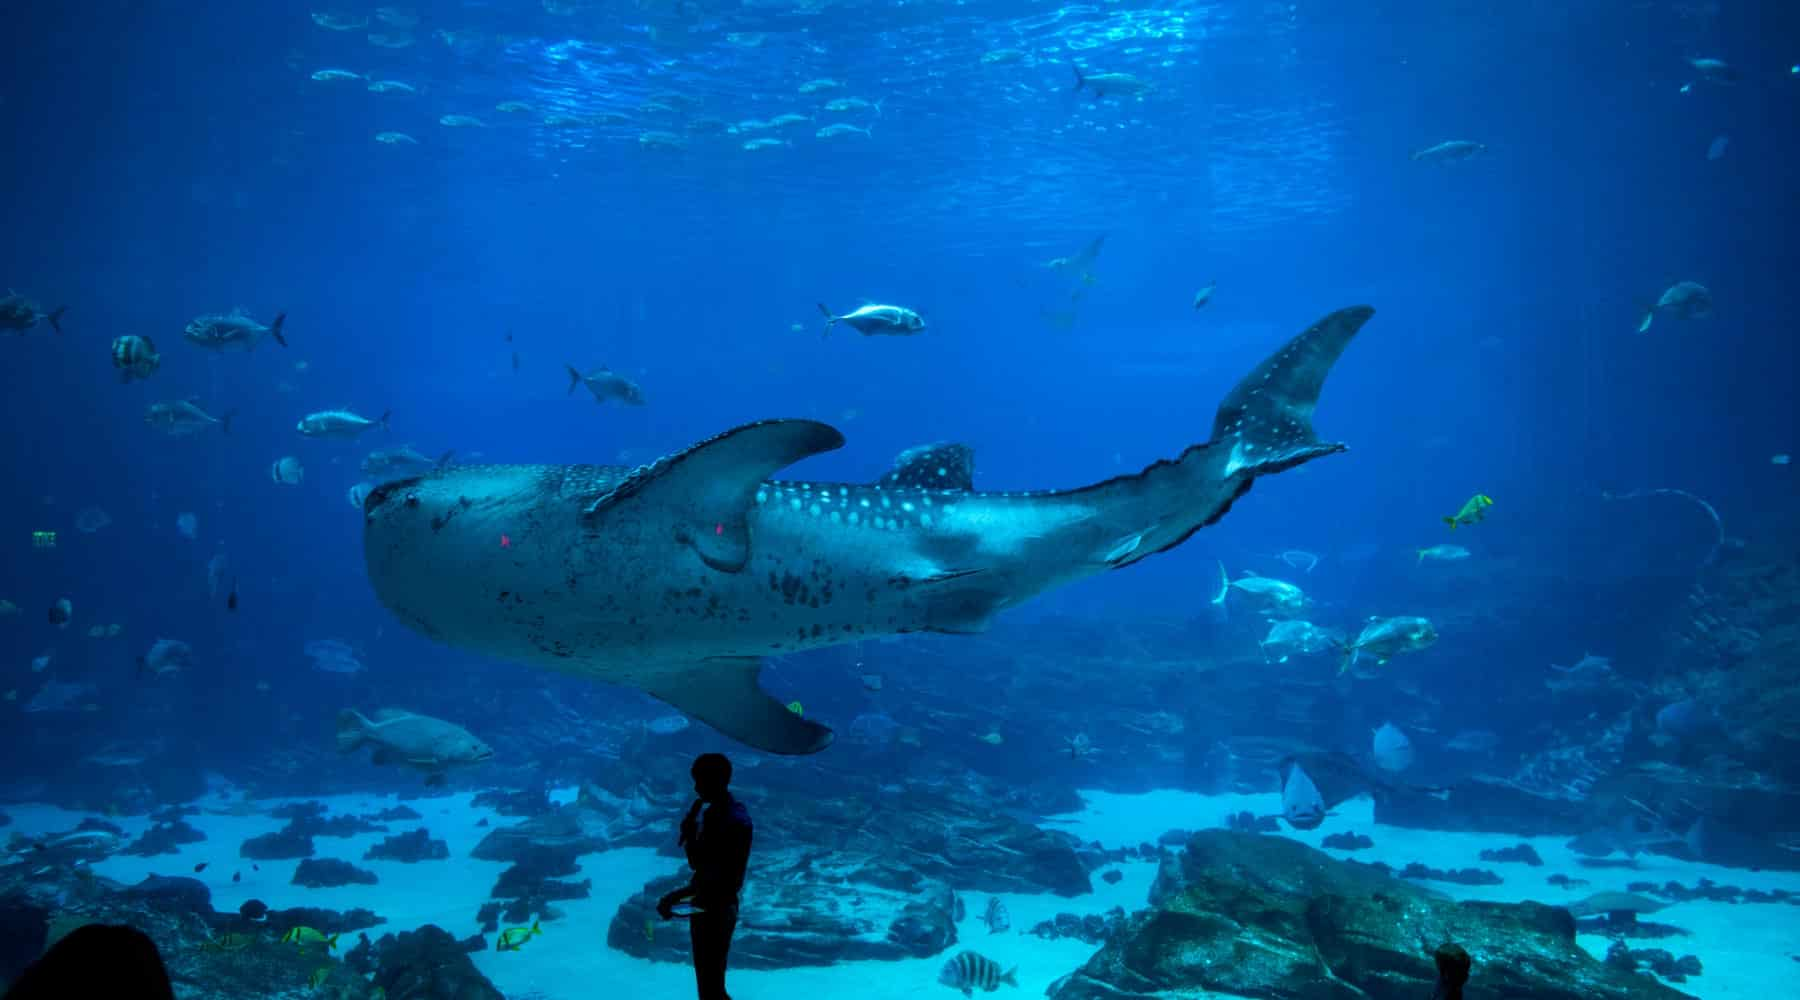 Antalya Aquarium – One of the World's Biggest Aquariums